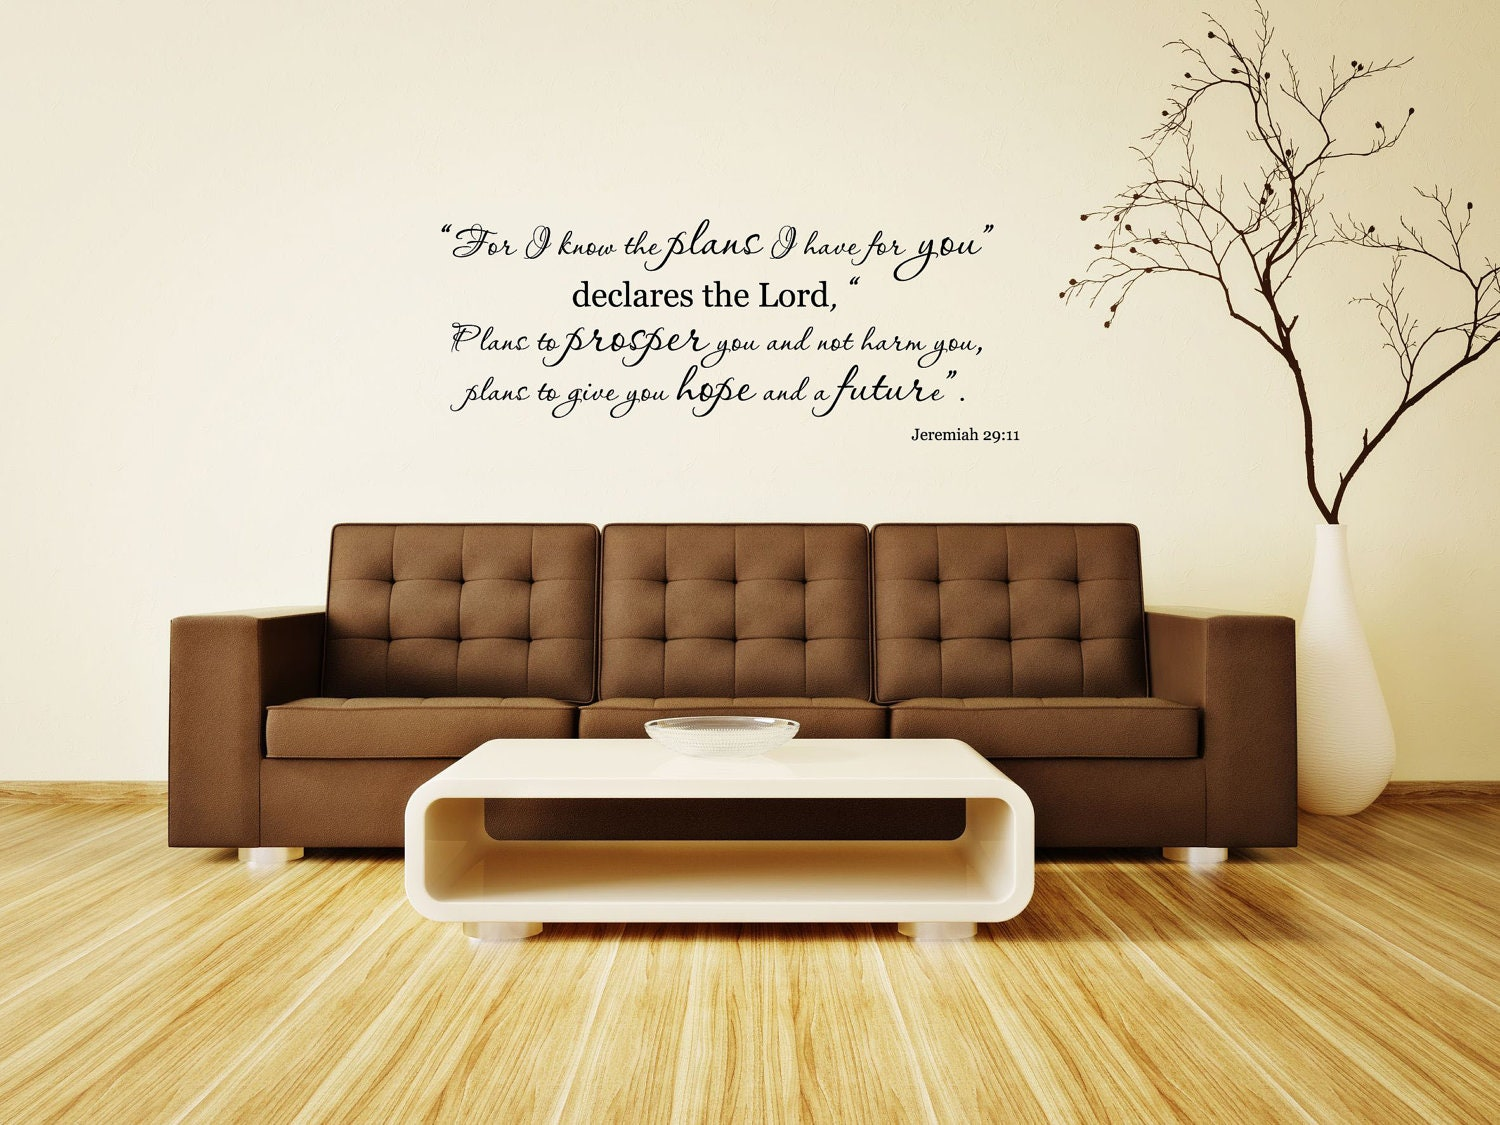 Jeremiah 29:11 Bible Verse Vinyl Wall Decal...For I know the